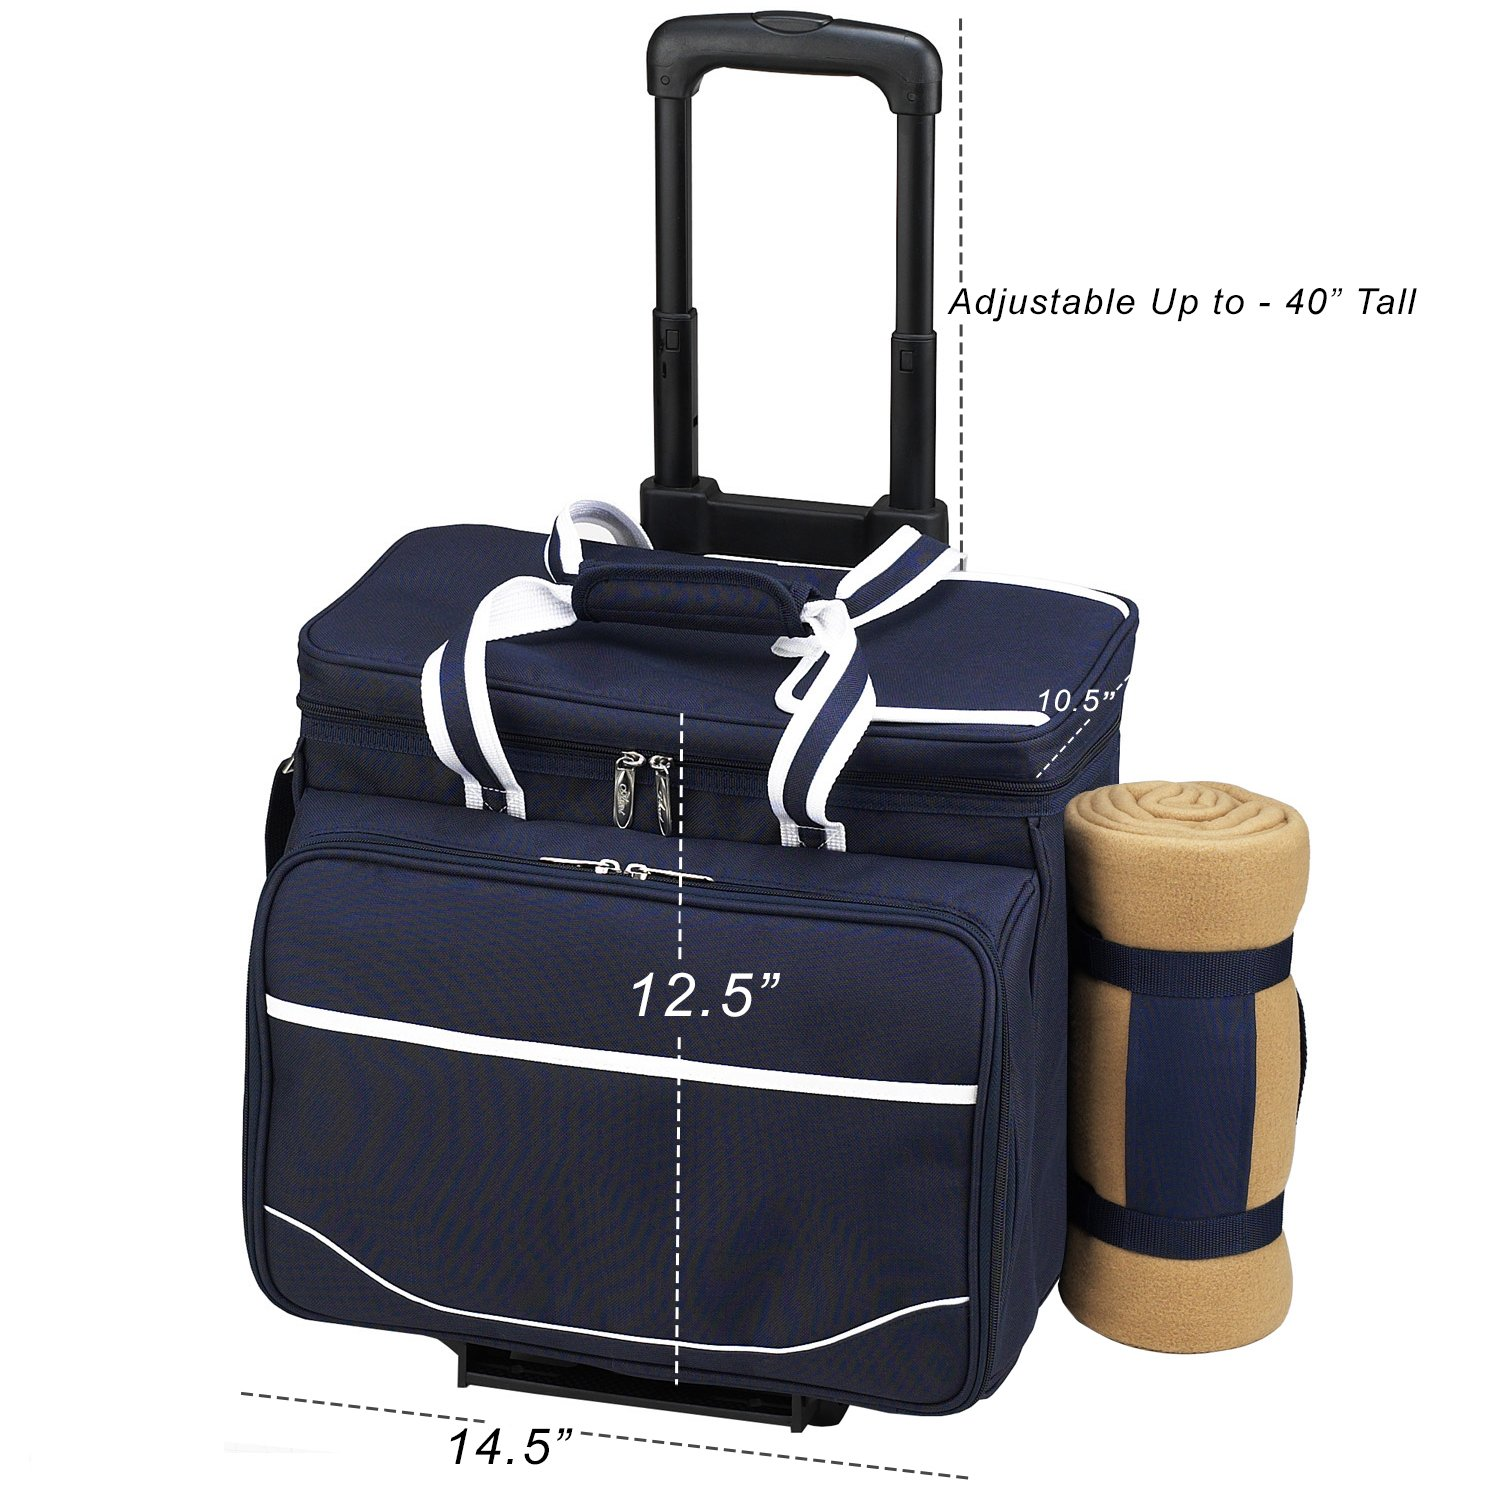 Picnic at Ascot Equipped Picnic Cooler On Wheels With Blanket, Navy White With Gingham